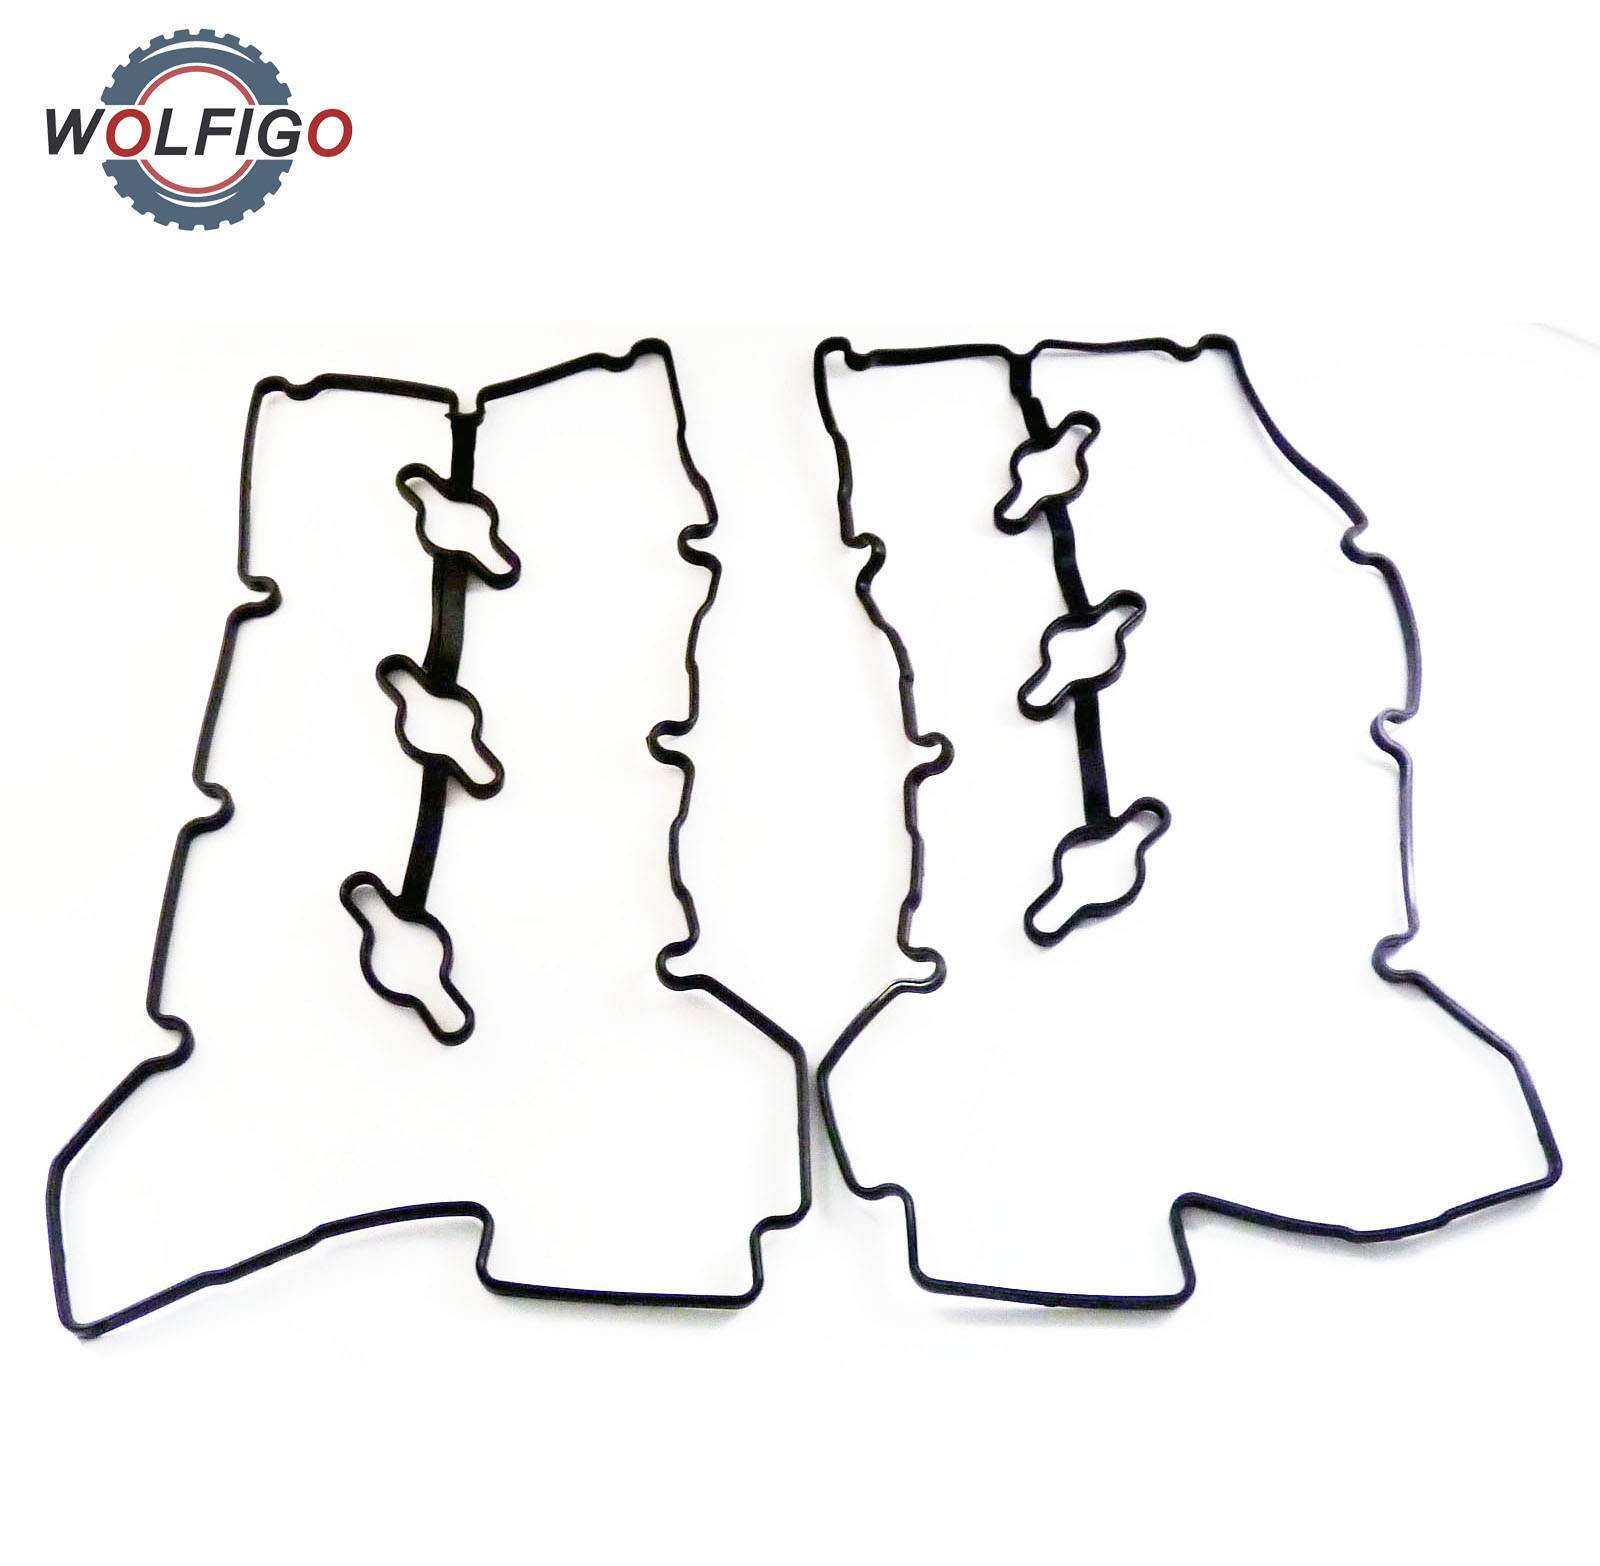 Wolfigo 2pcs Engine Valve Cover Gasket Left Amp Right